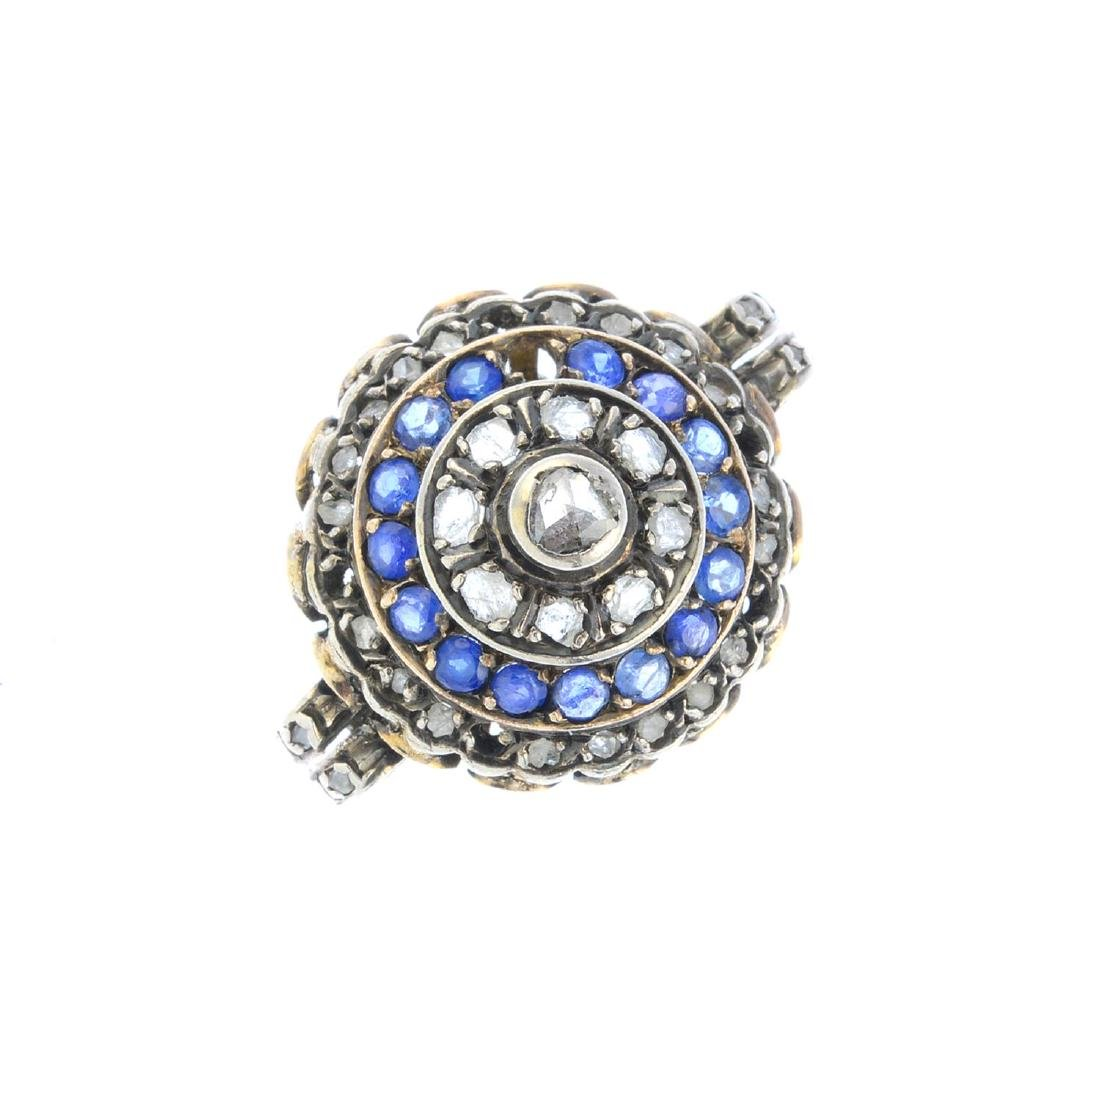 A sapphire and diamond jewellery component. The